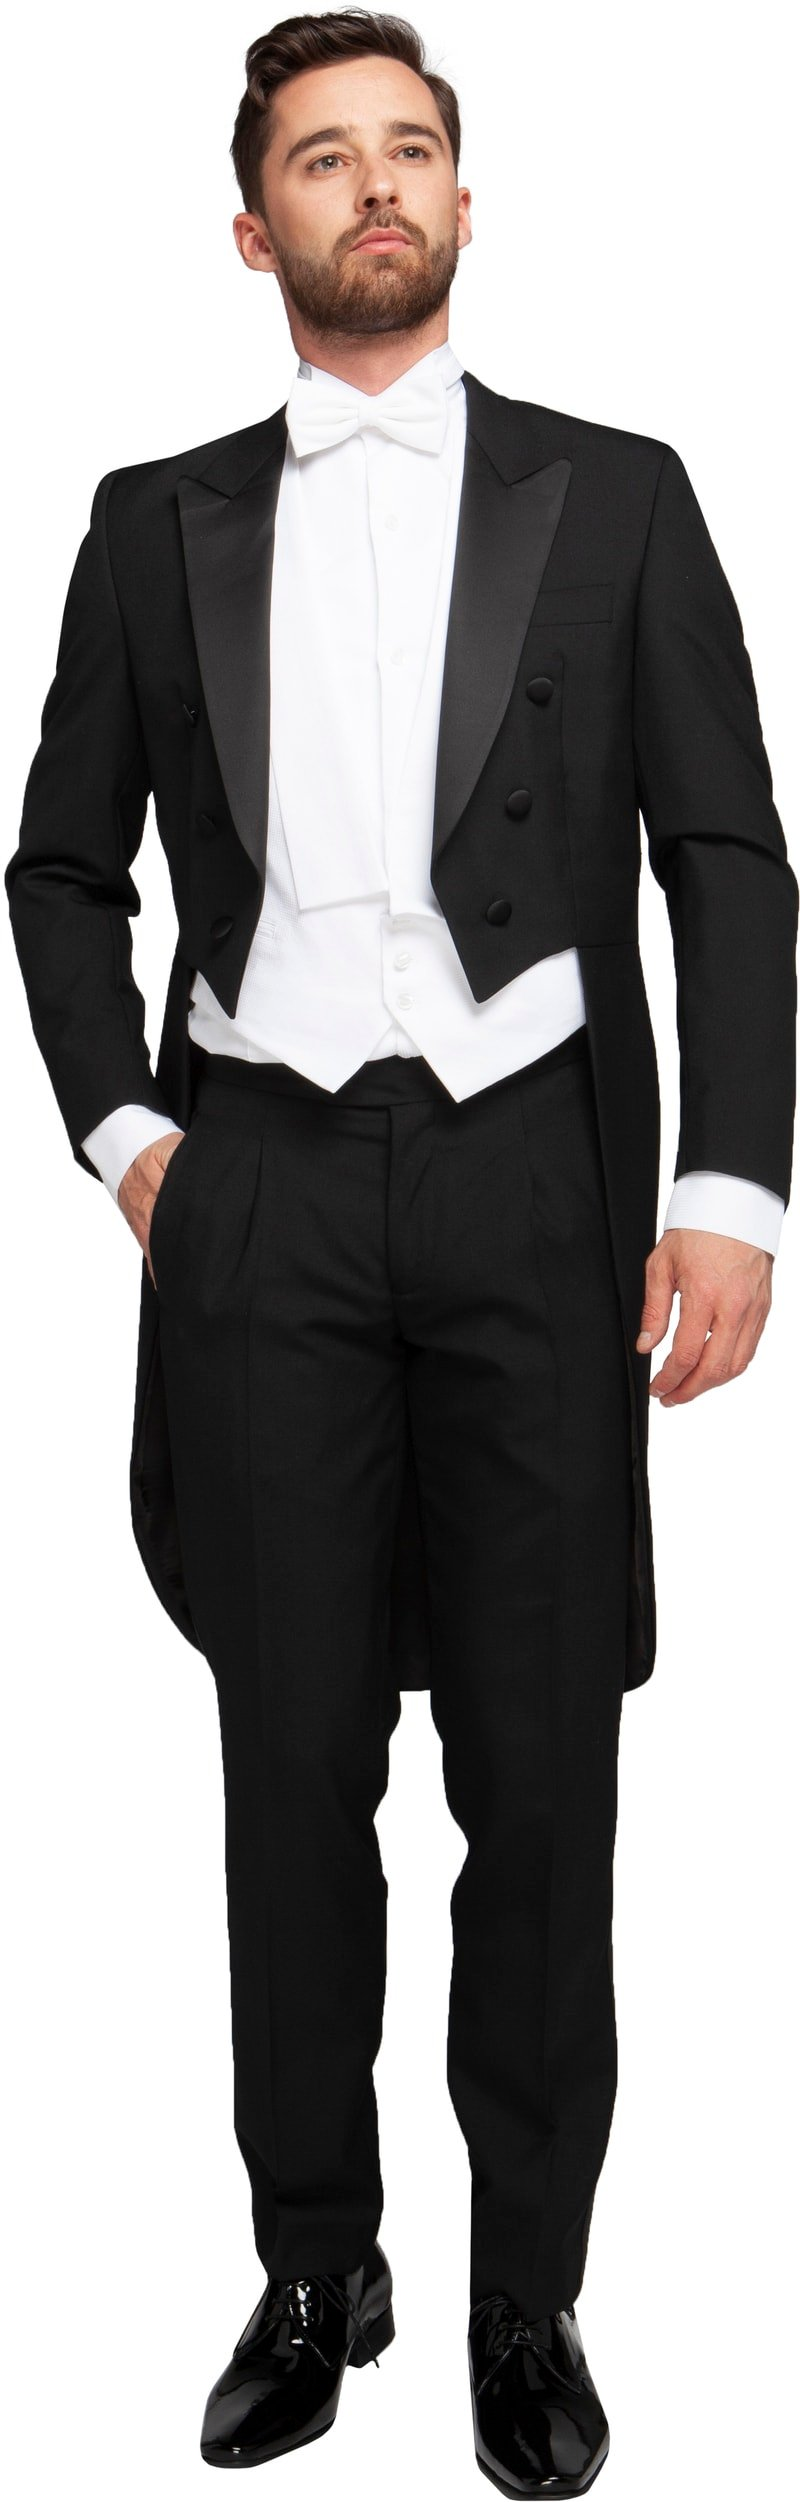 Budapest Tailcoat + Accessories photo 1